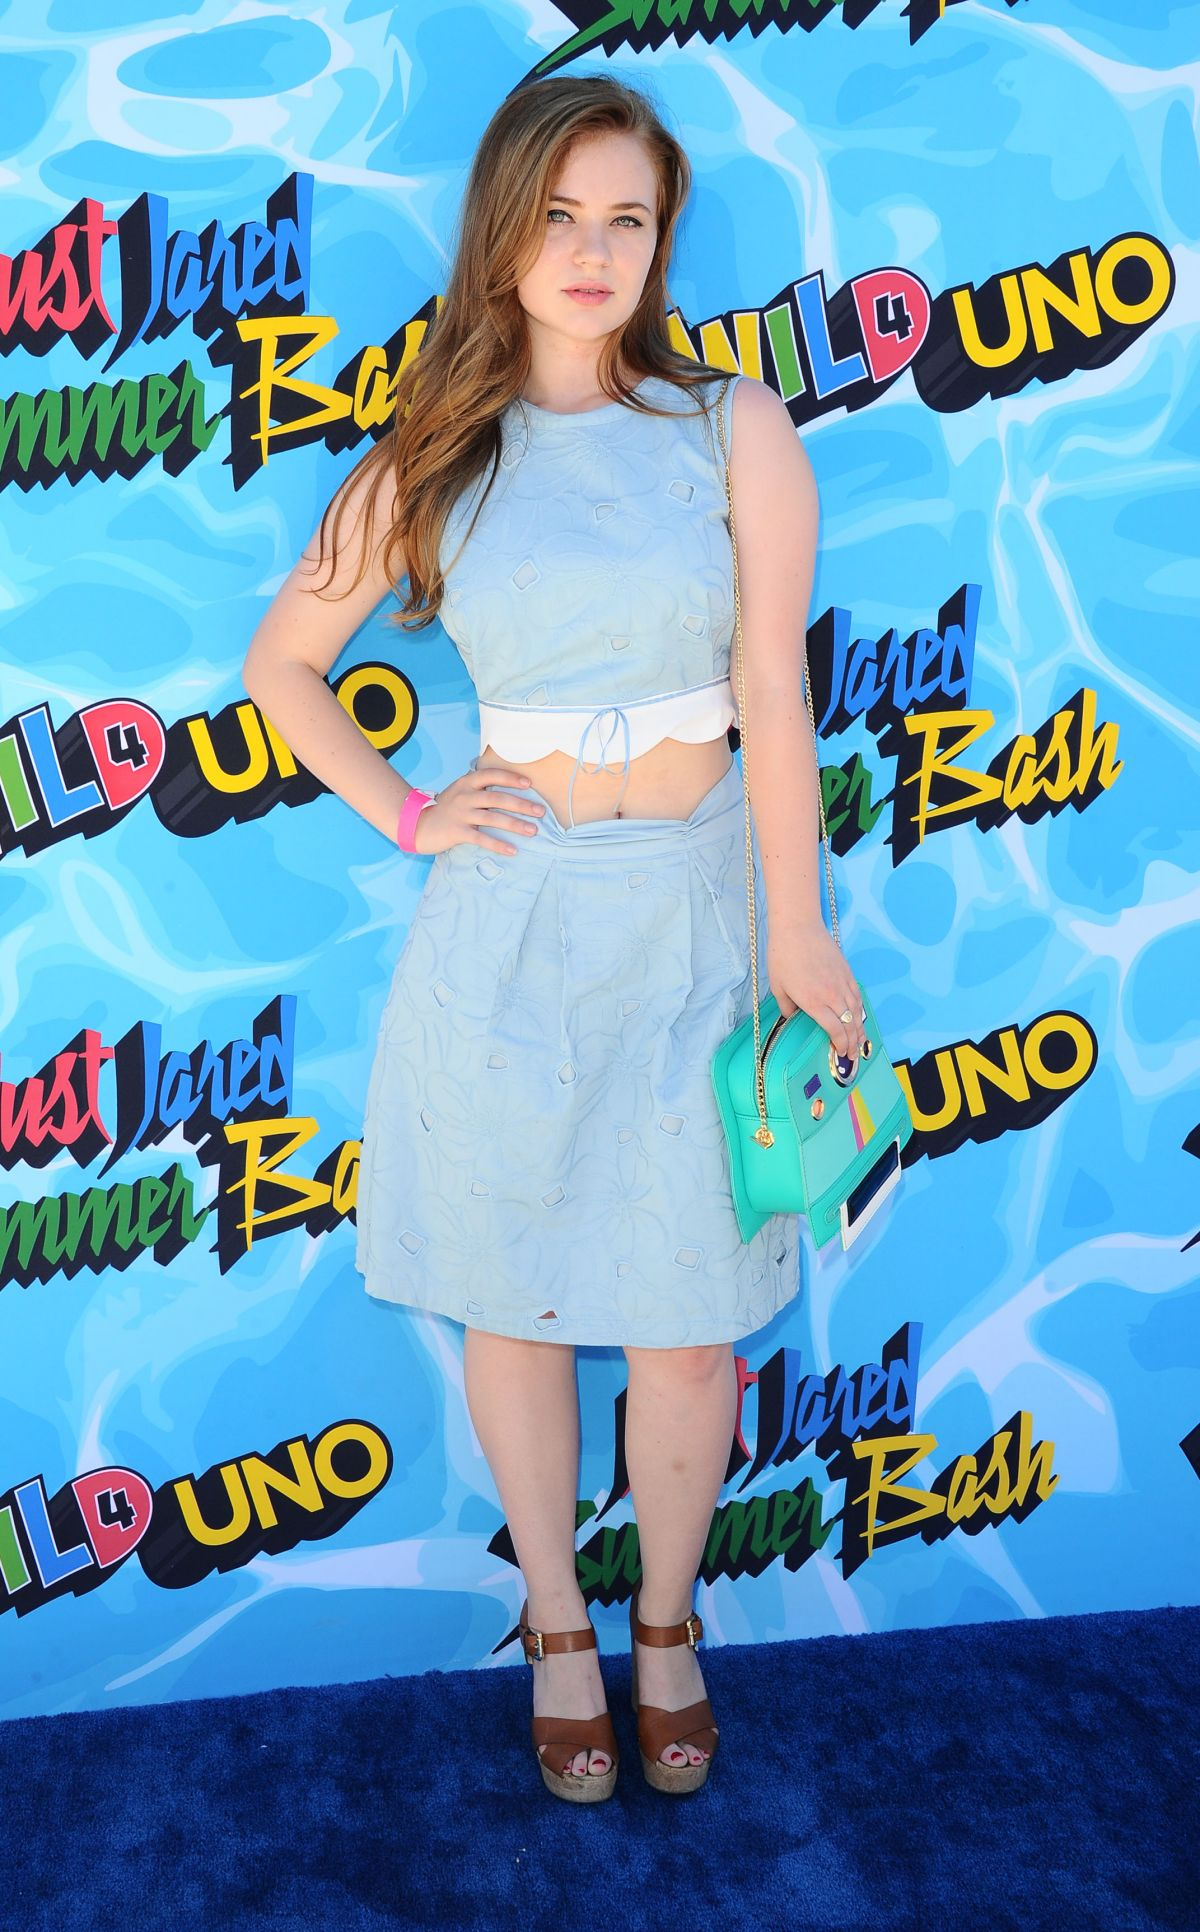 SIERRA MCCORMICK at 4th Annual Just Jared Summer Bash in Beverly Hills 08/13/2016